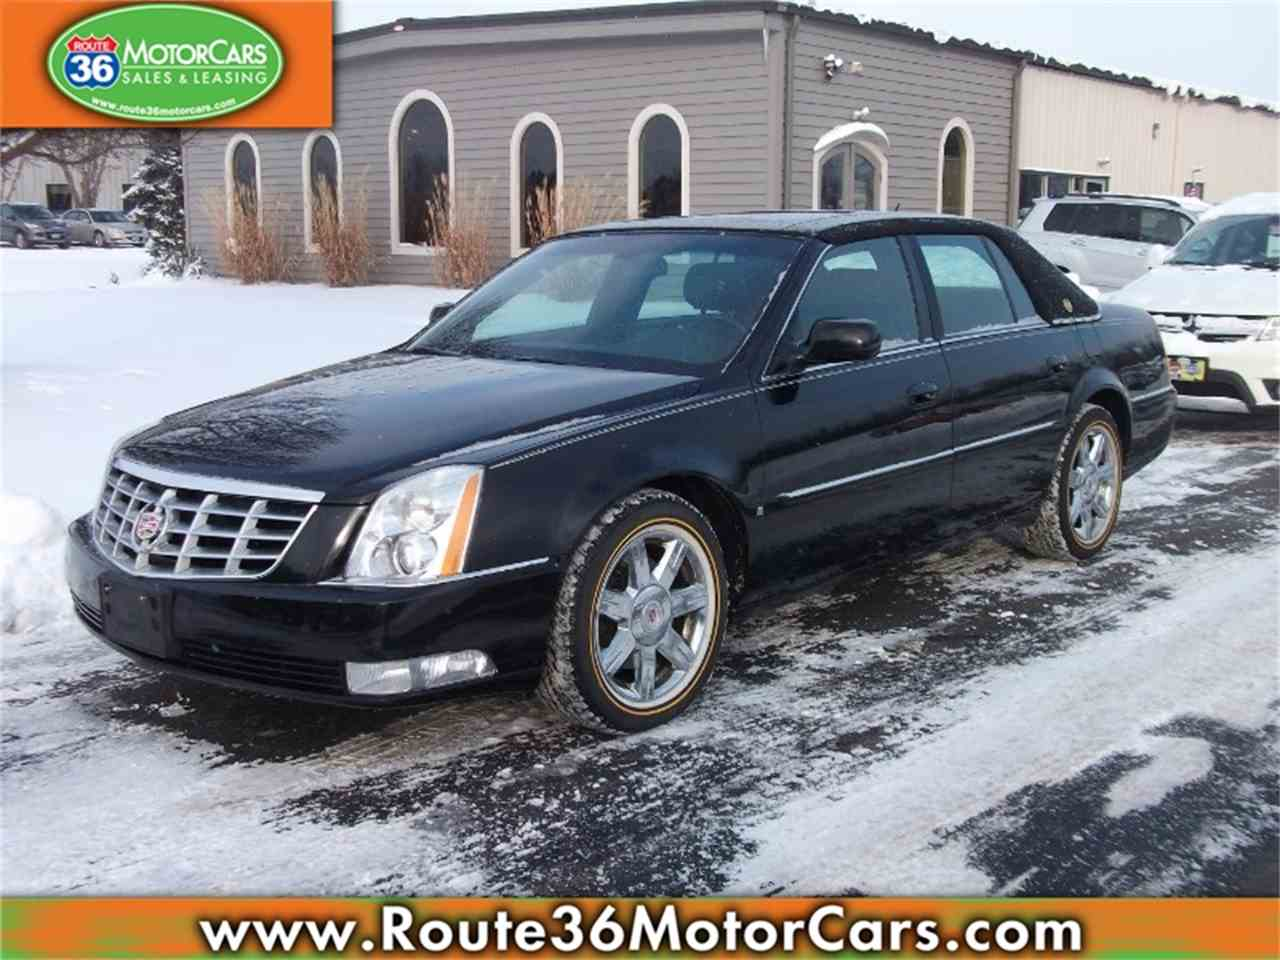 used dts gallery pa nsm luxury pittsburgh from collection in cadillac for sale cars